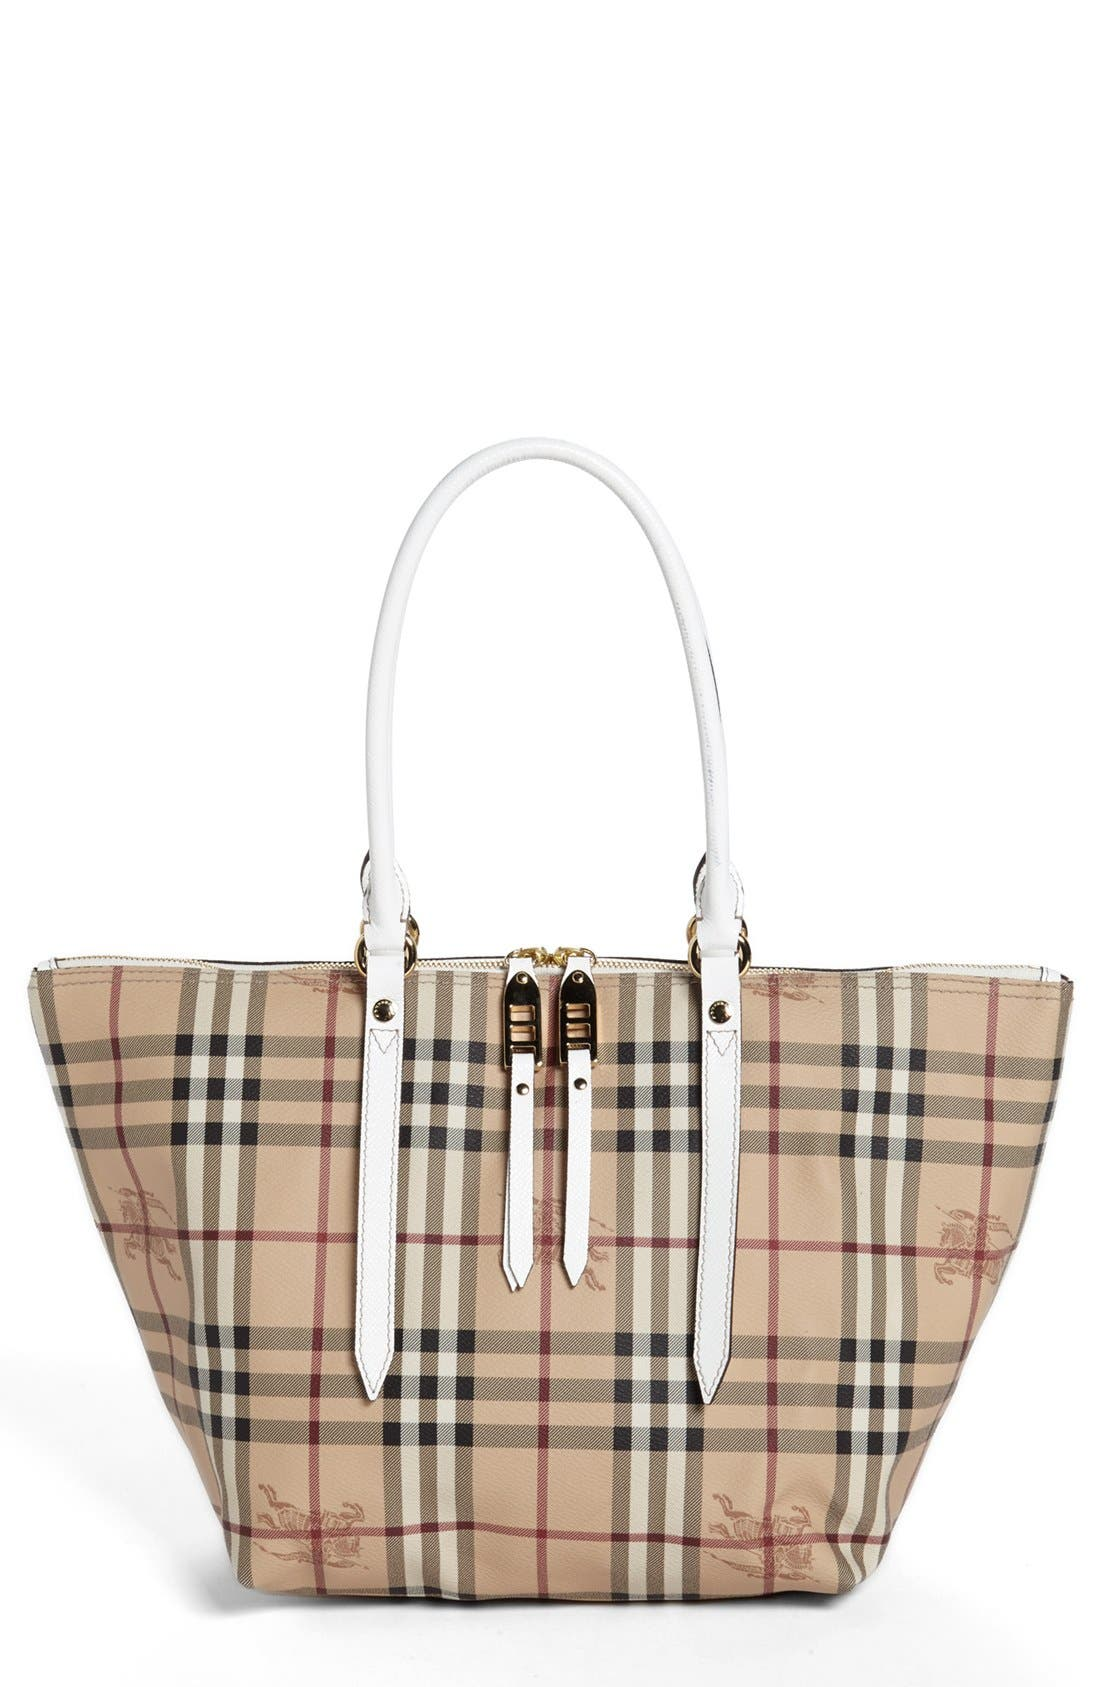 Alternate Image 1 Selected - Burberry 'Small Salisbury' Tote